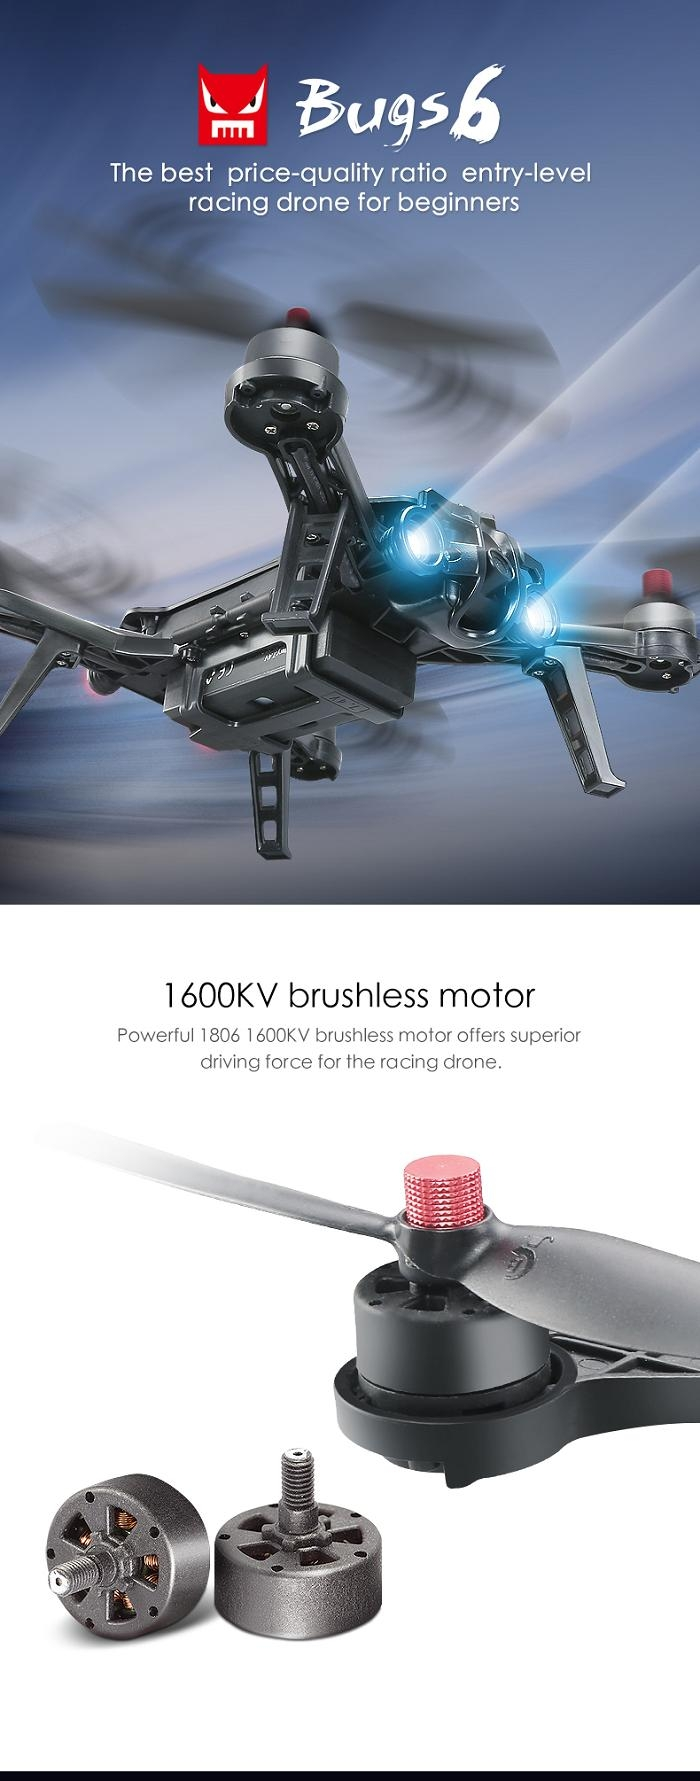 Introductions Do You Want To Buy A High Quality Remote Control Toy Why Not Try This MJX B6 Bugs 6 Two Way 24GHz 4CH 3D Roll RC Brushless Racing